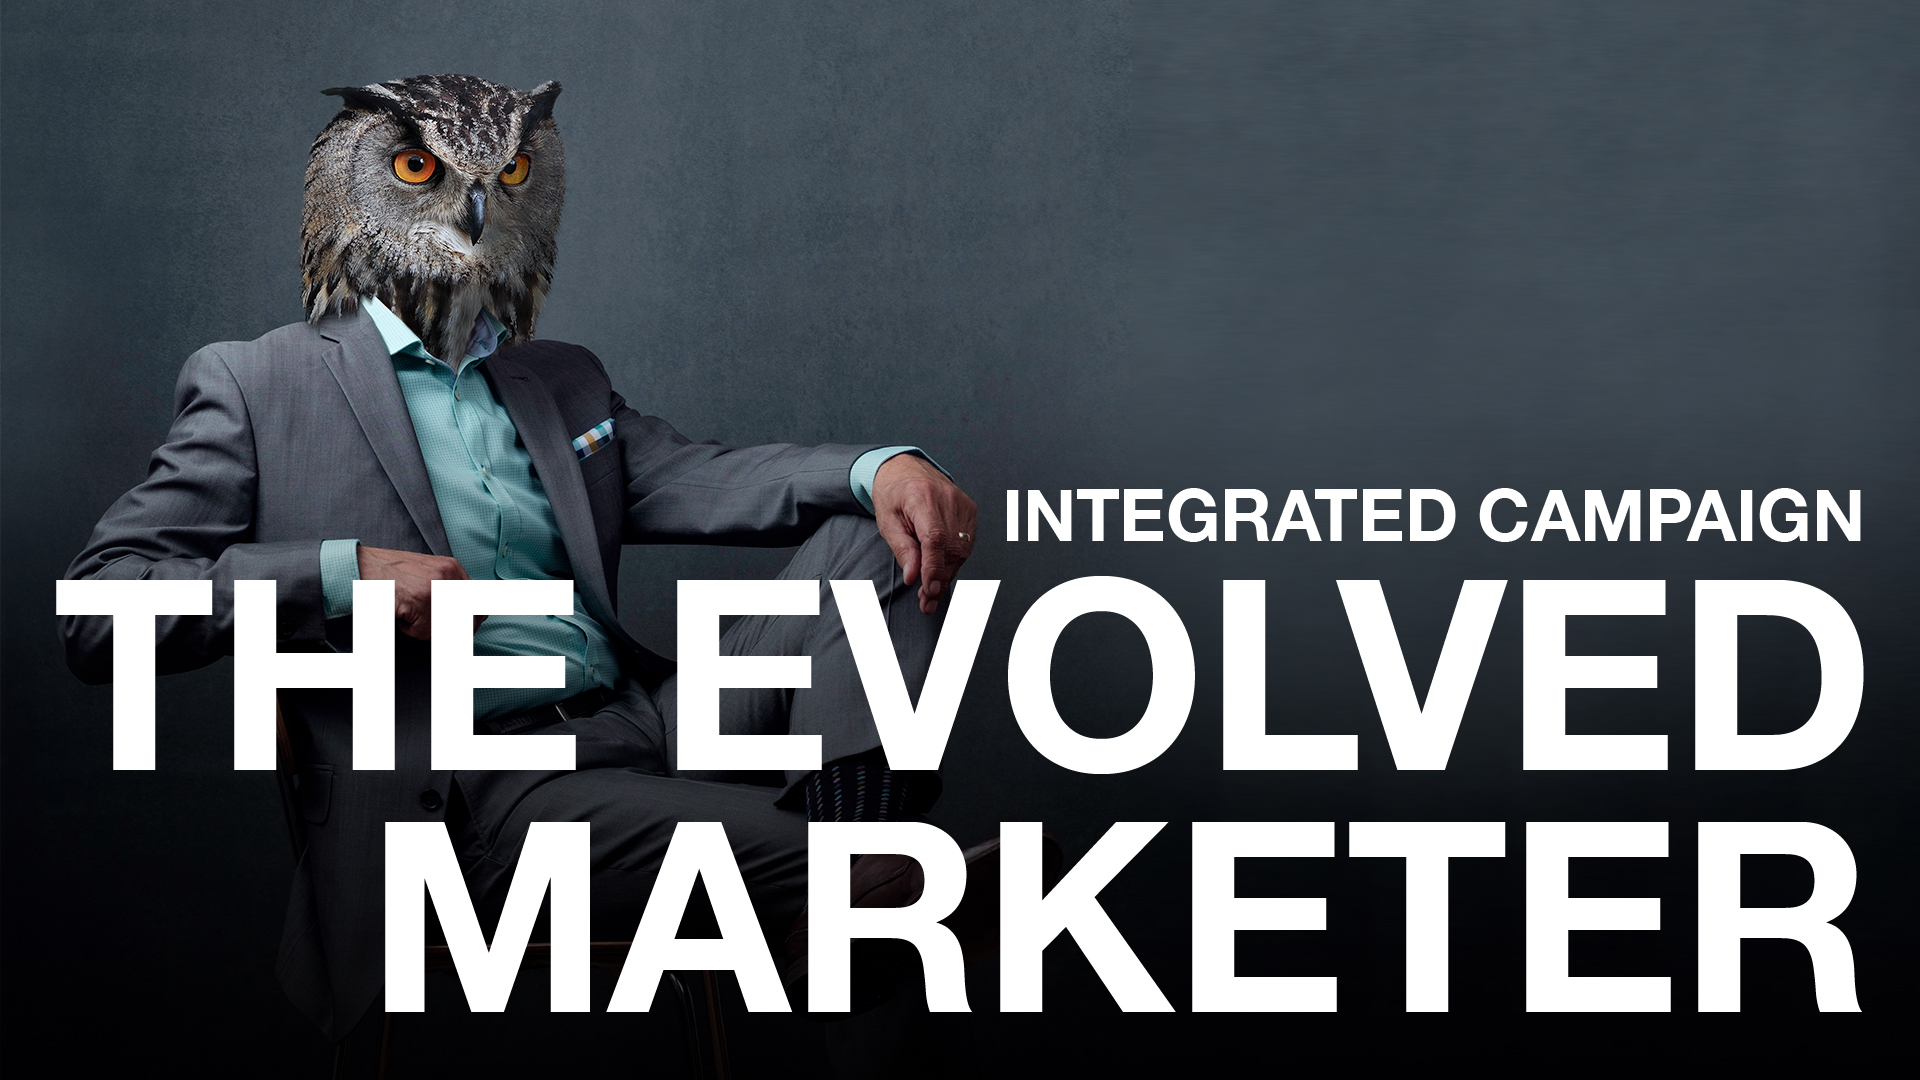 The Evolved Marketer